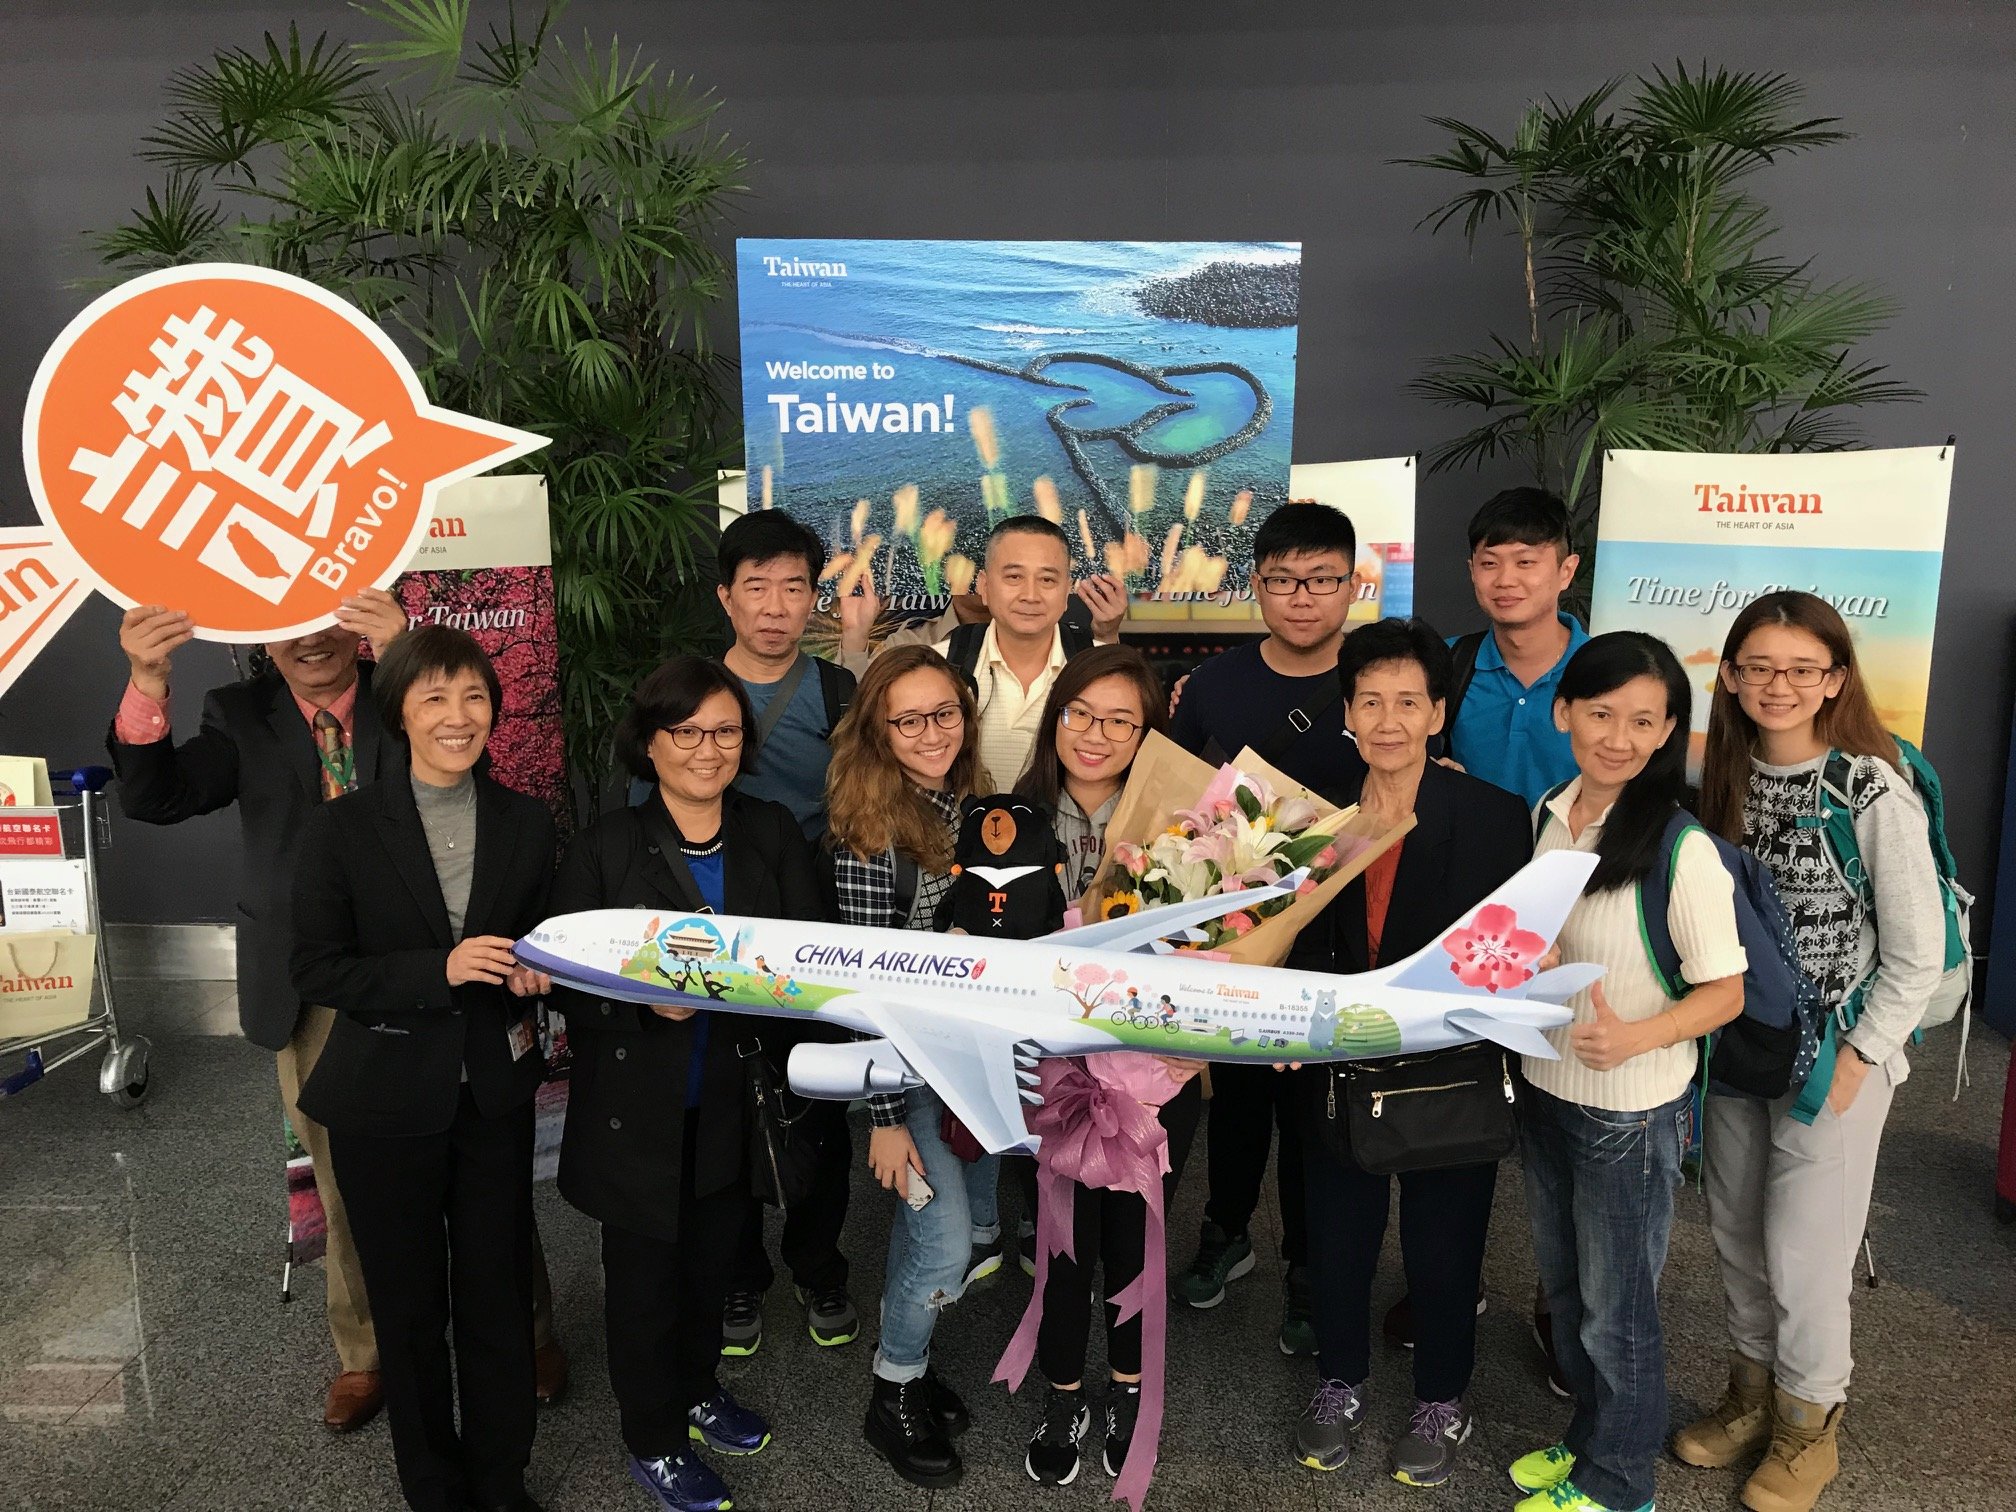 On Dec. 12, the Tourism Bureau welcomed Taiwan's 10 millionth international visitor in 2017